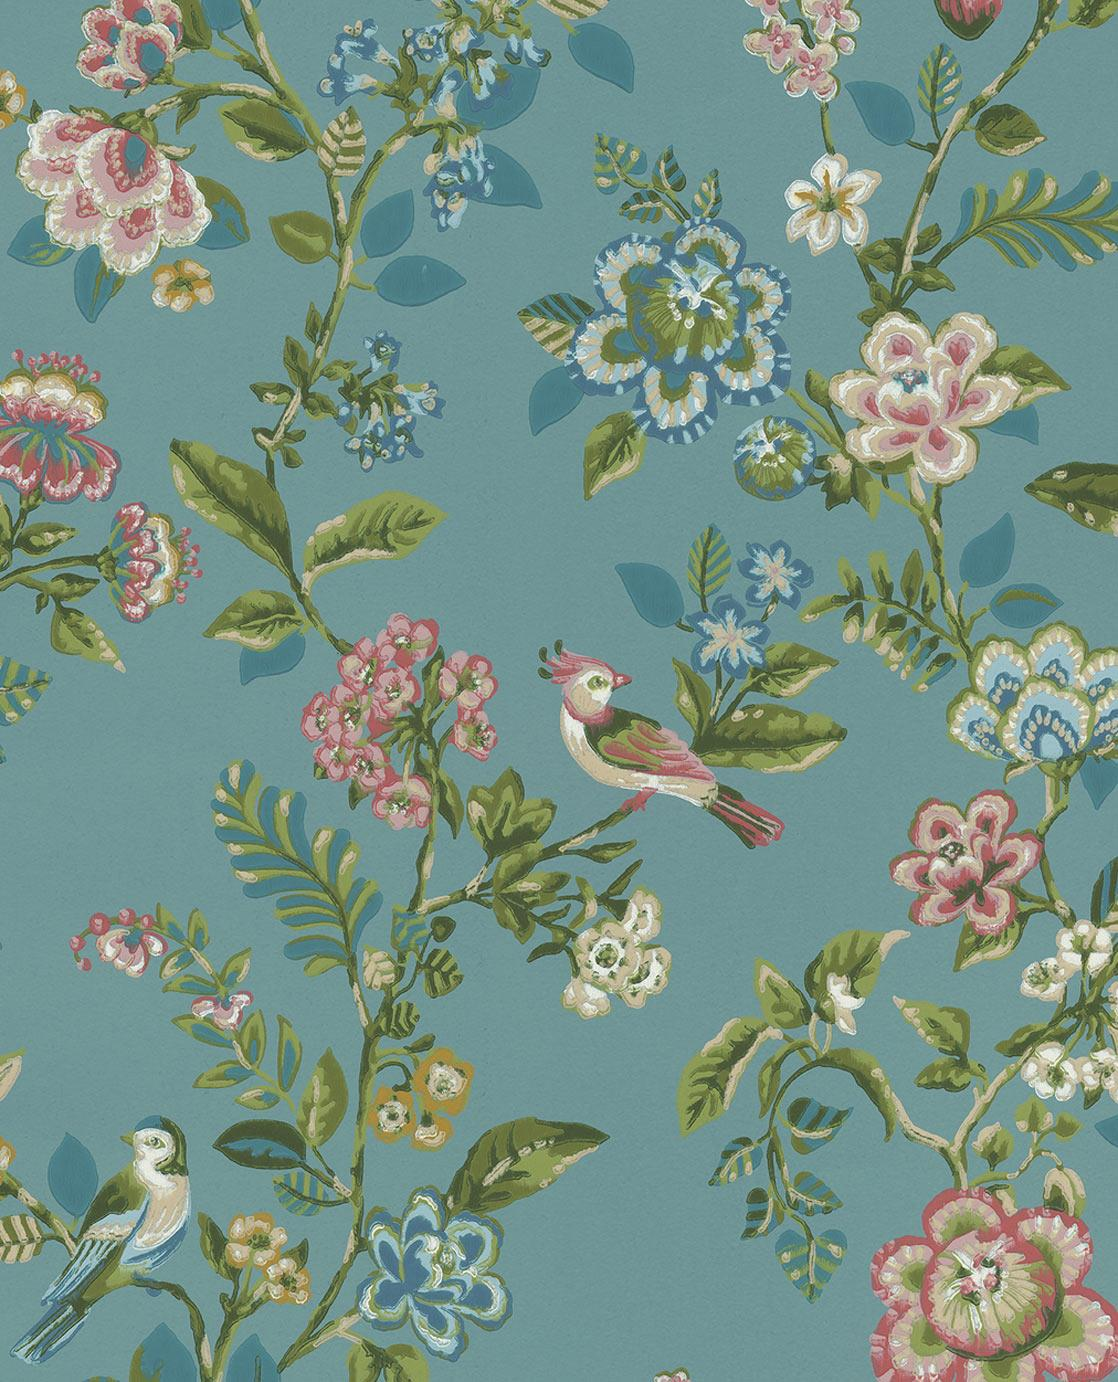 The wallpaper is Pip Studio No. 6, Blue , Multi Color, 10 x 0,52